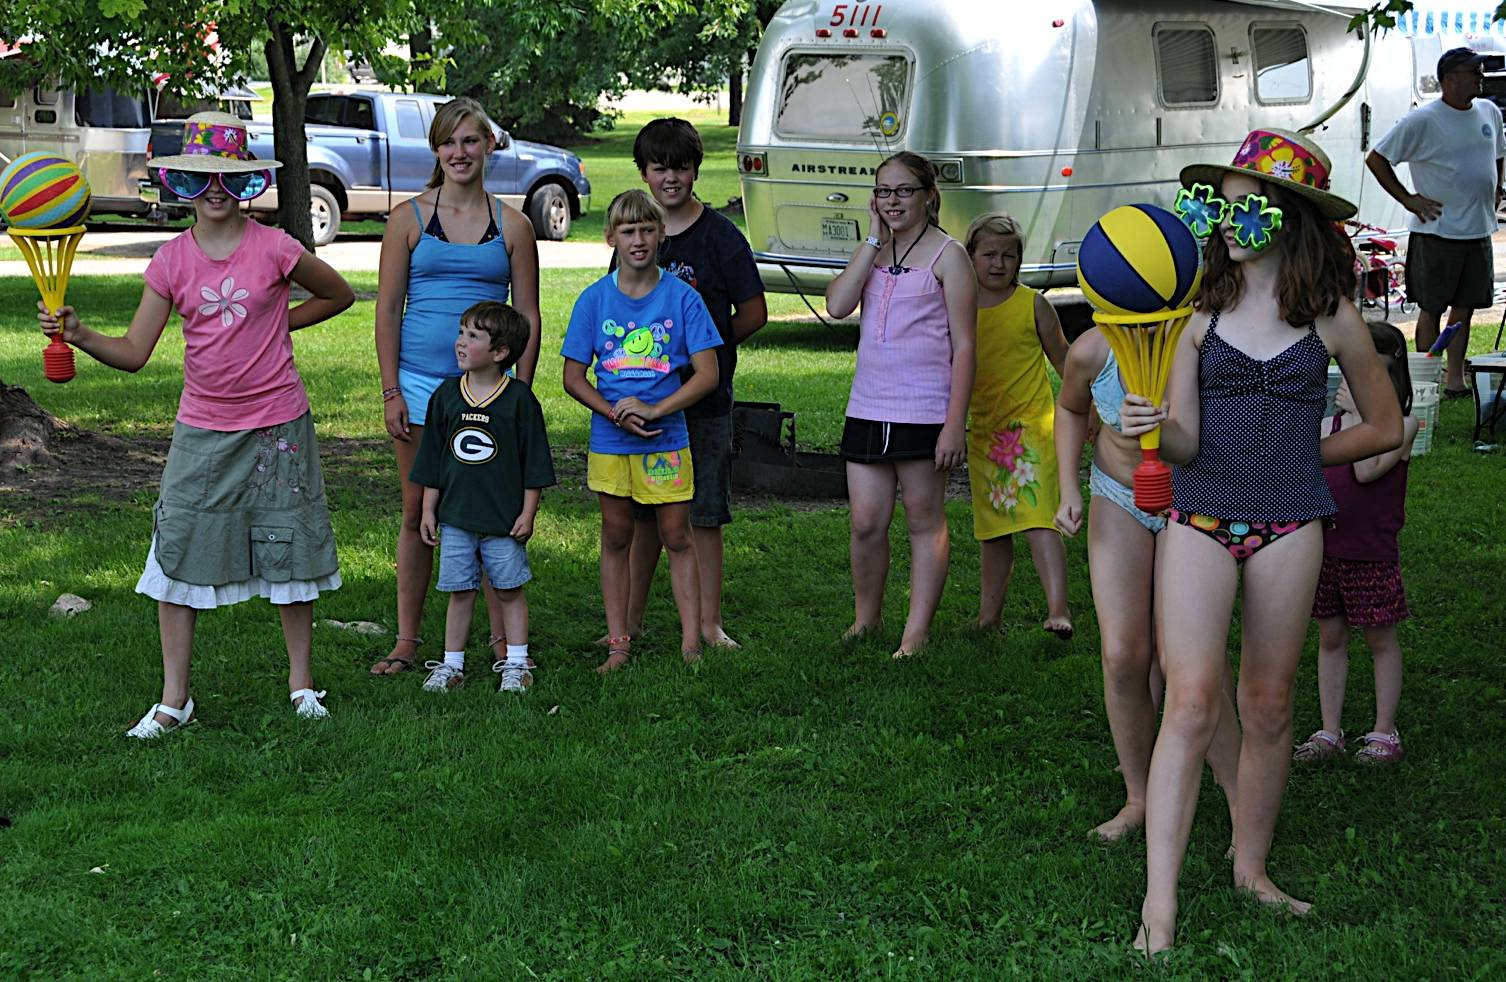 Click image for larger version  Name:Pipe_kids_1.jpg Views:76 Size:285.3 KB ID:87720